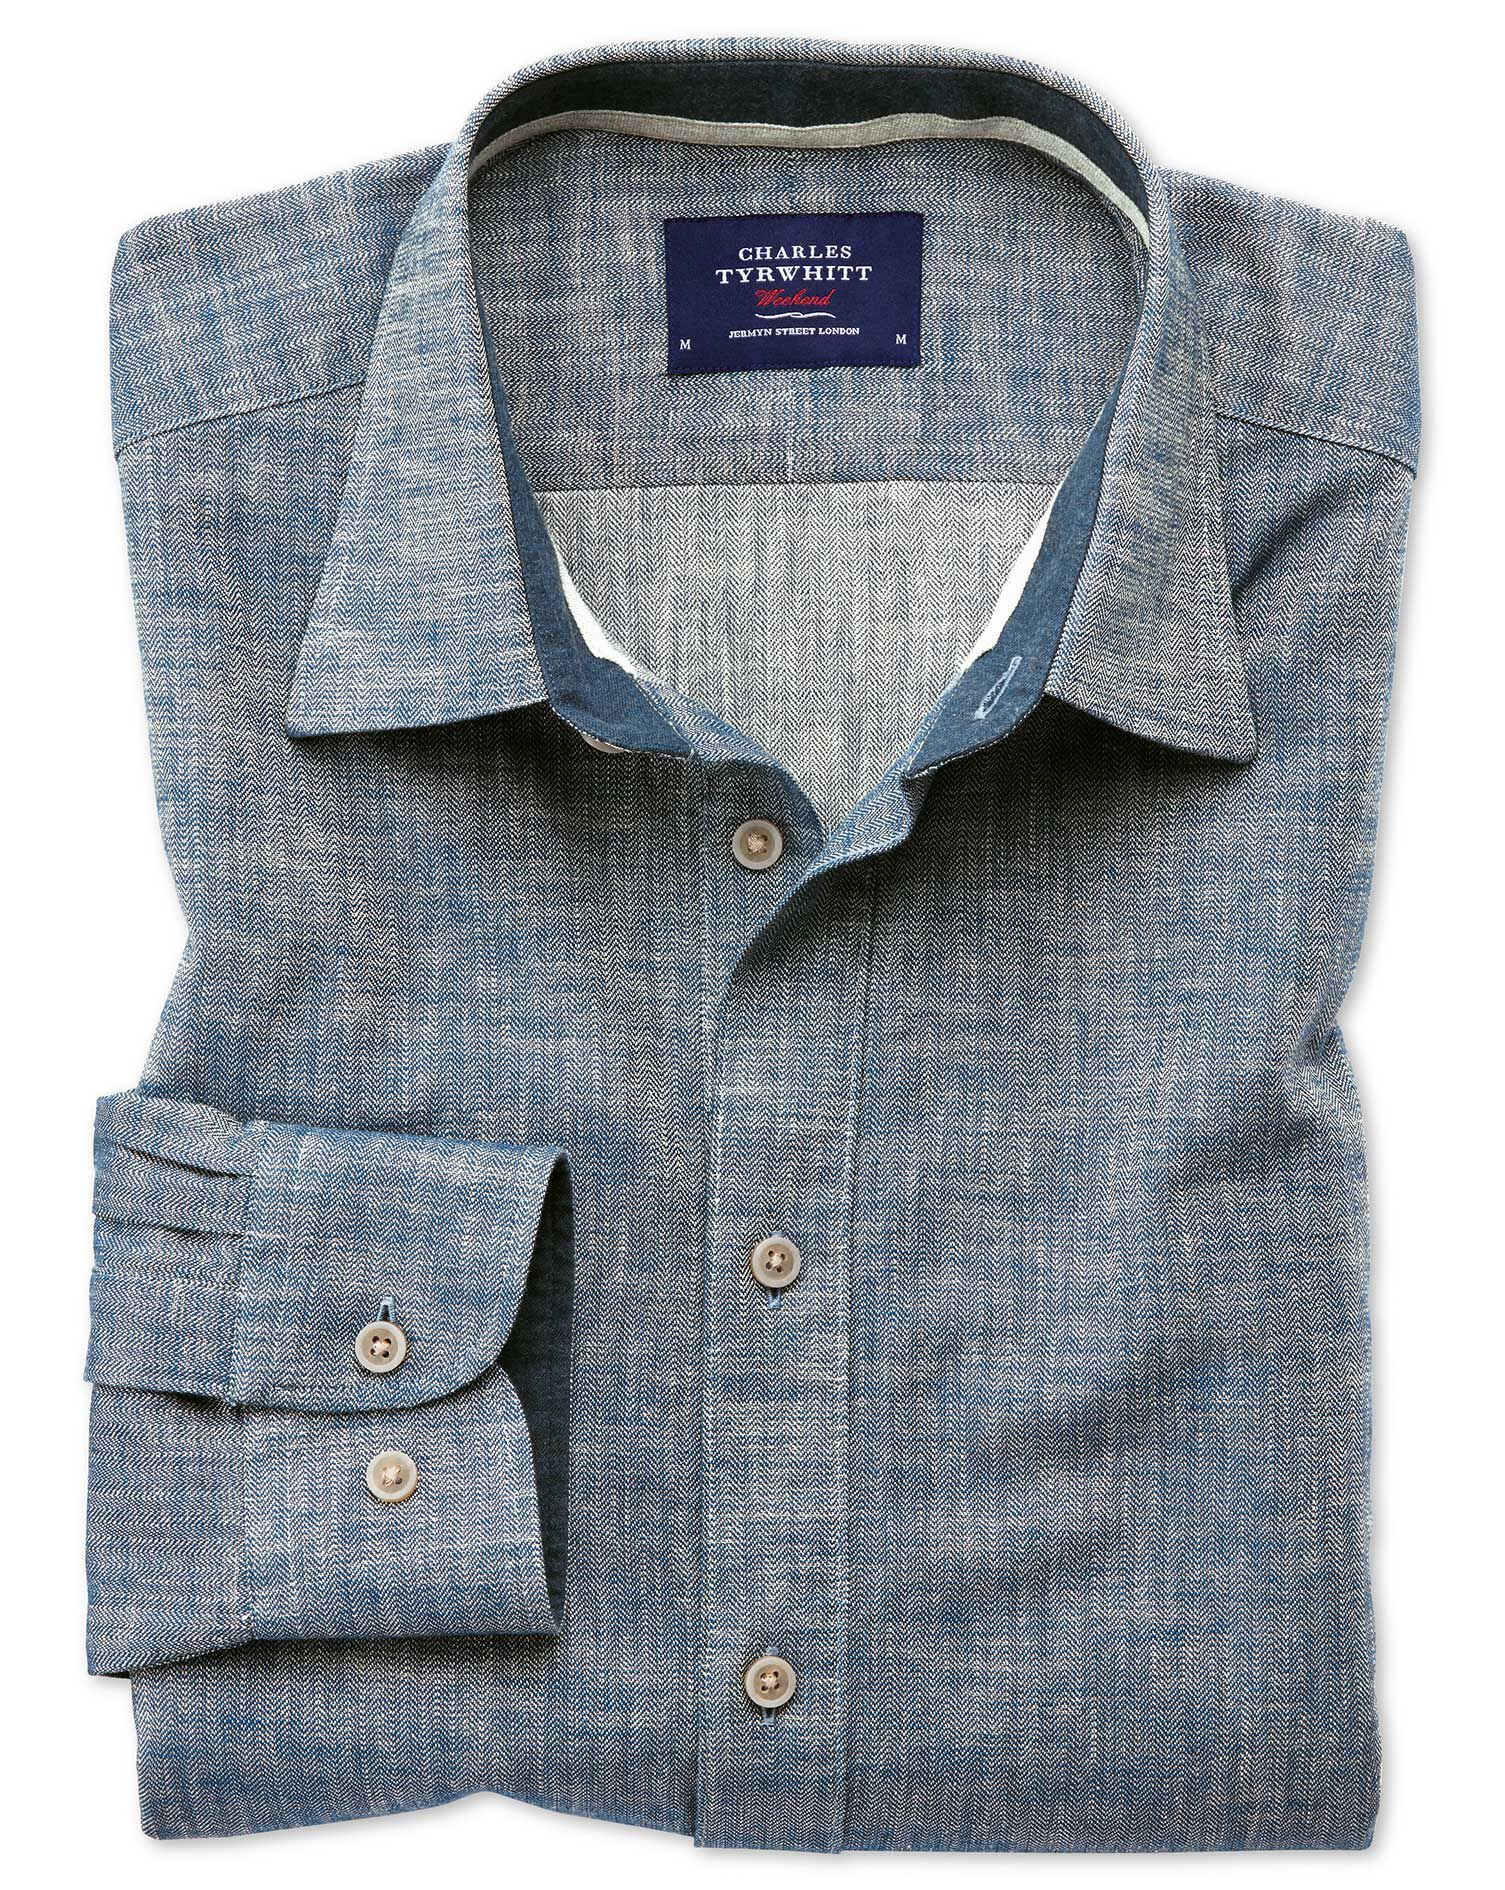 Slim Fit Popover Herringbone Denim Blue Cotton Shirt Single Cuff Size XXL by Charles Tyrwhitt